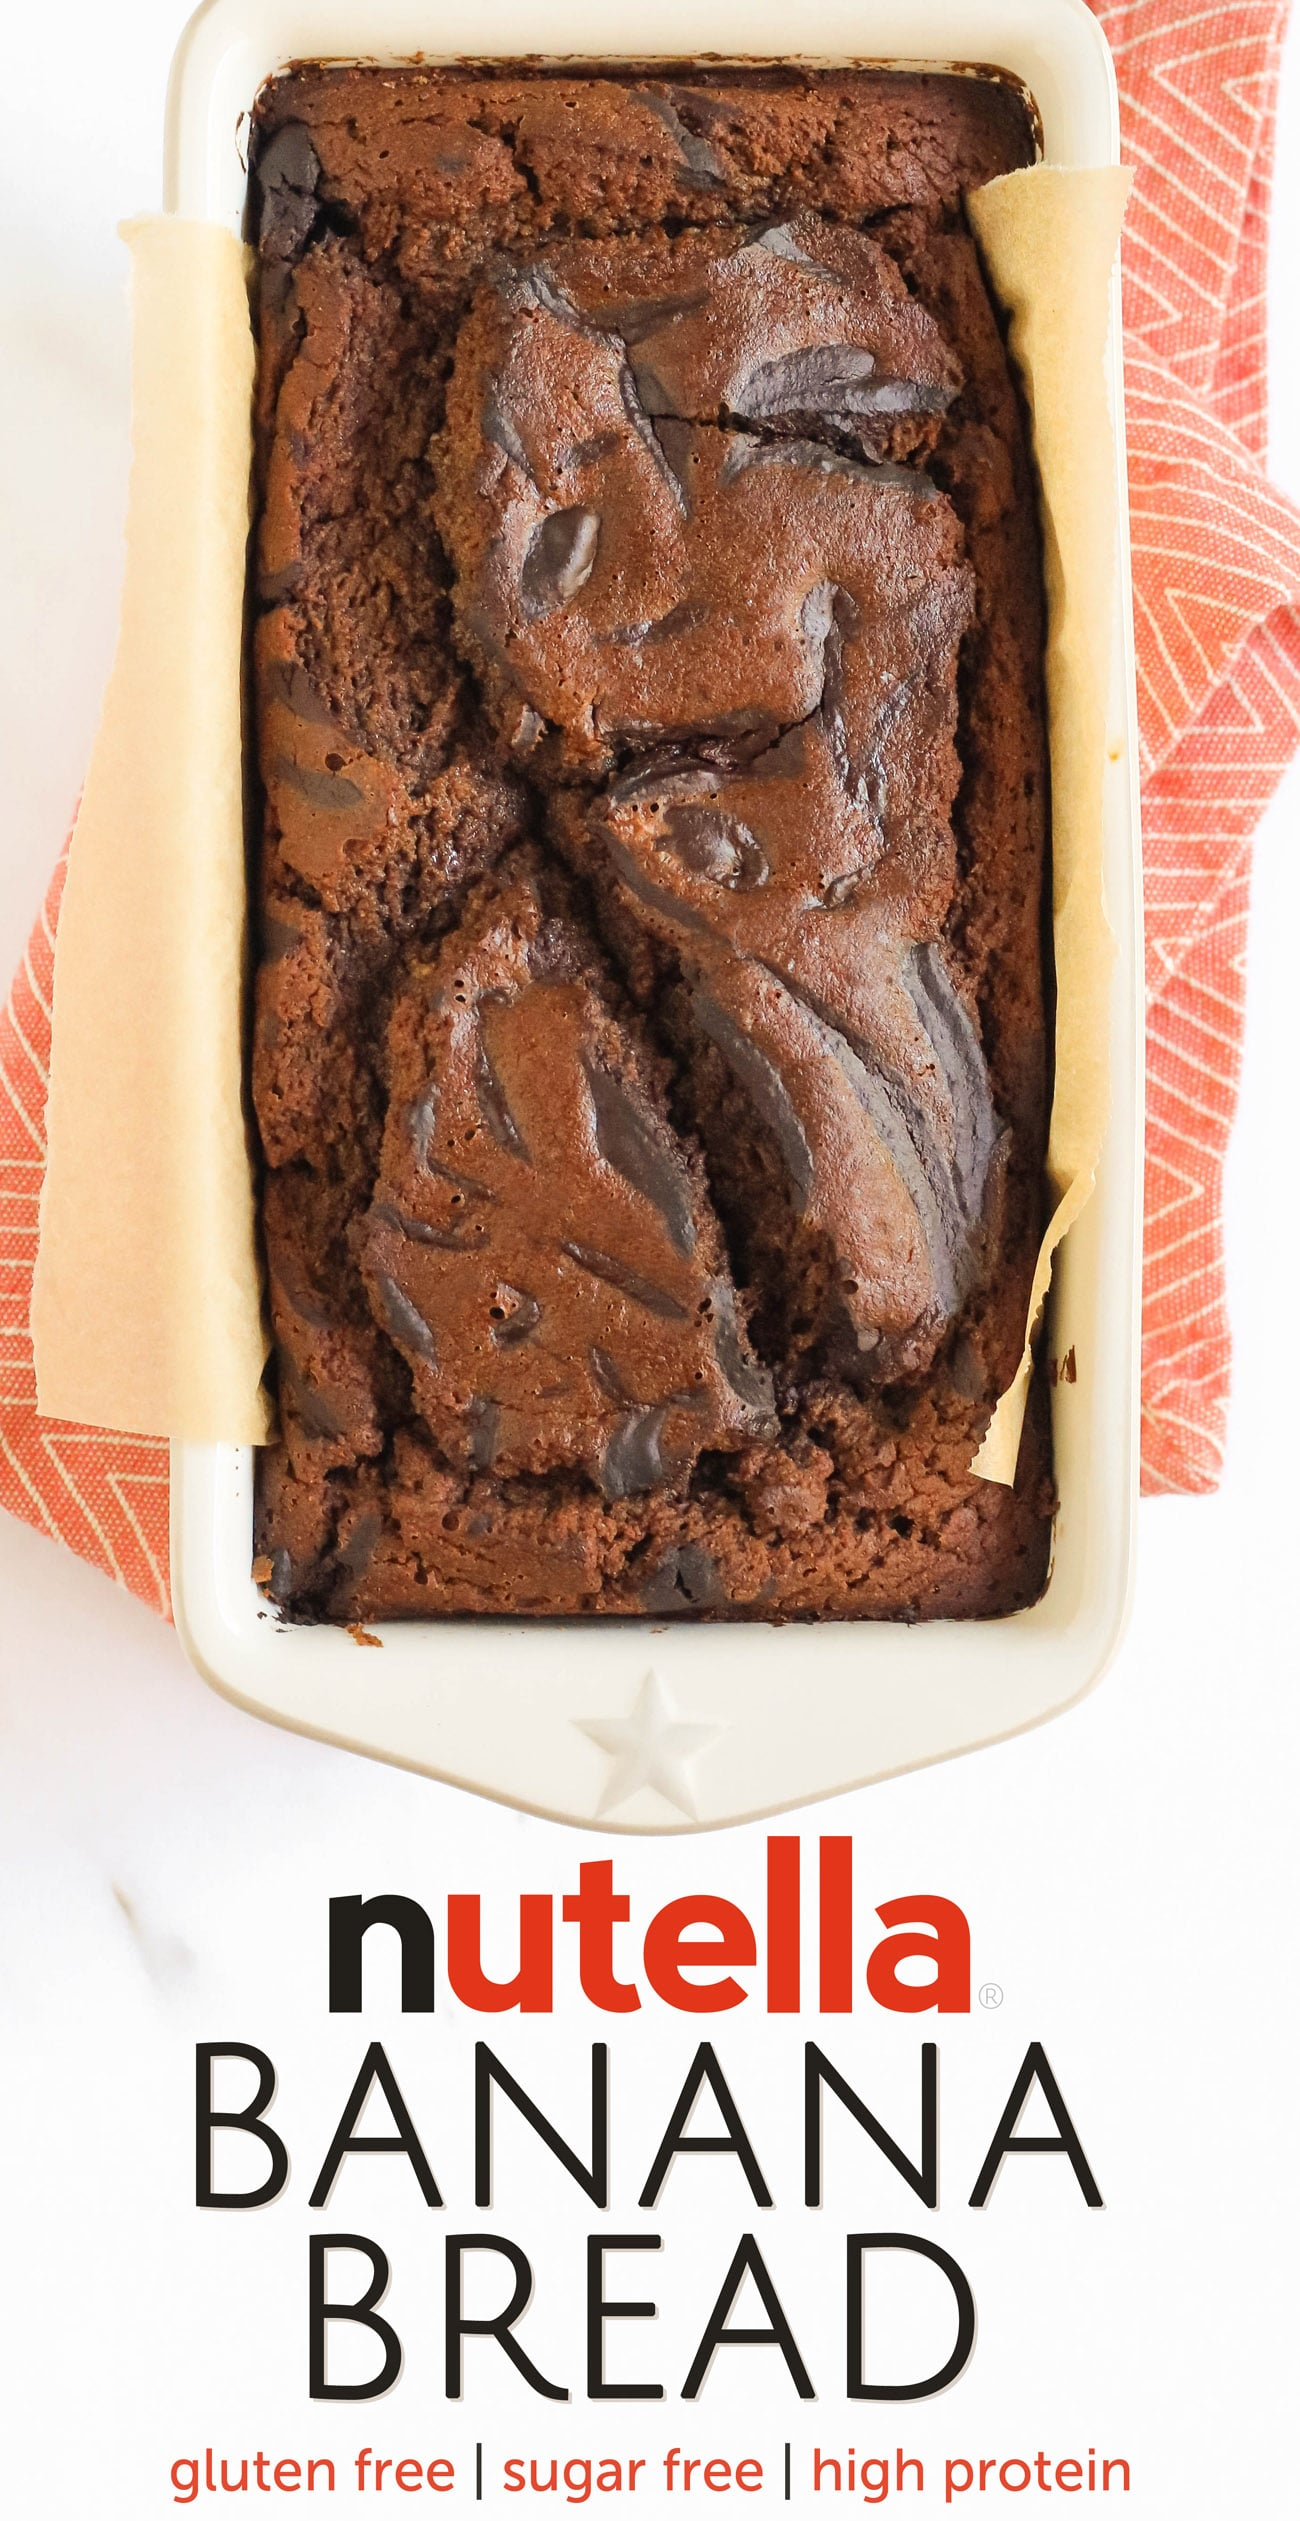 This Nutella Banana Bread is so moist, fluffy, springy, and chocolatey! It doesn't taste healthy, sugar free, gluten free, dairy free, high protein, or whole grain ONE BIT. It tastes like it's from a bakery! Made with low carb, paleo, and keto-friendly homemade Nutella!